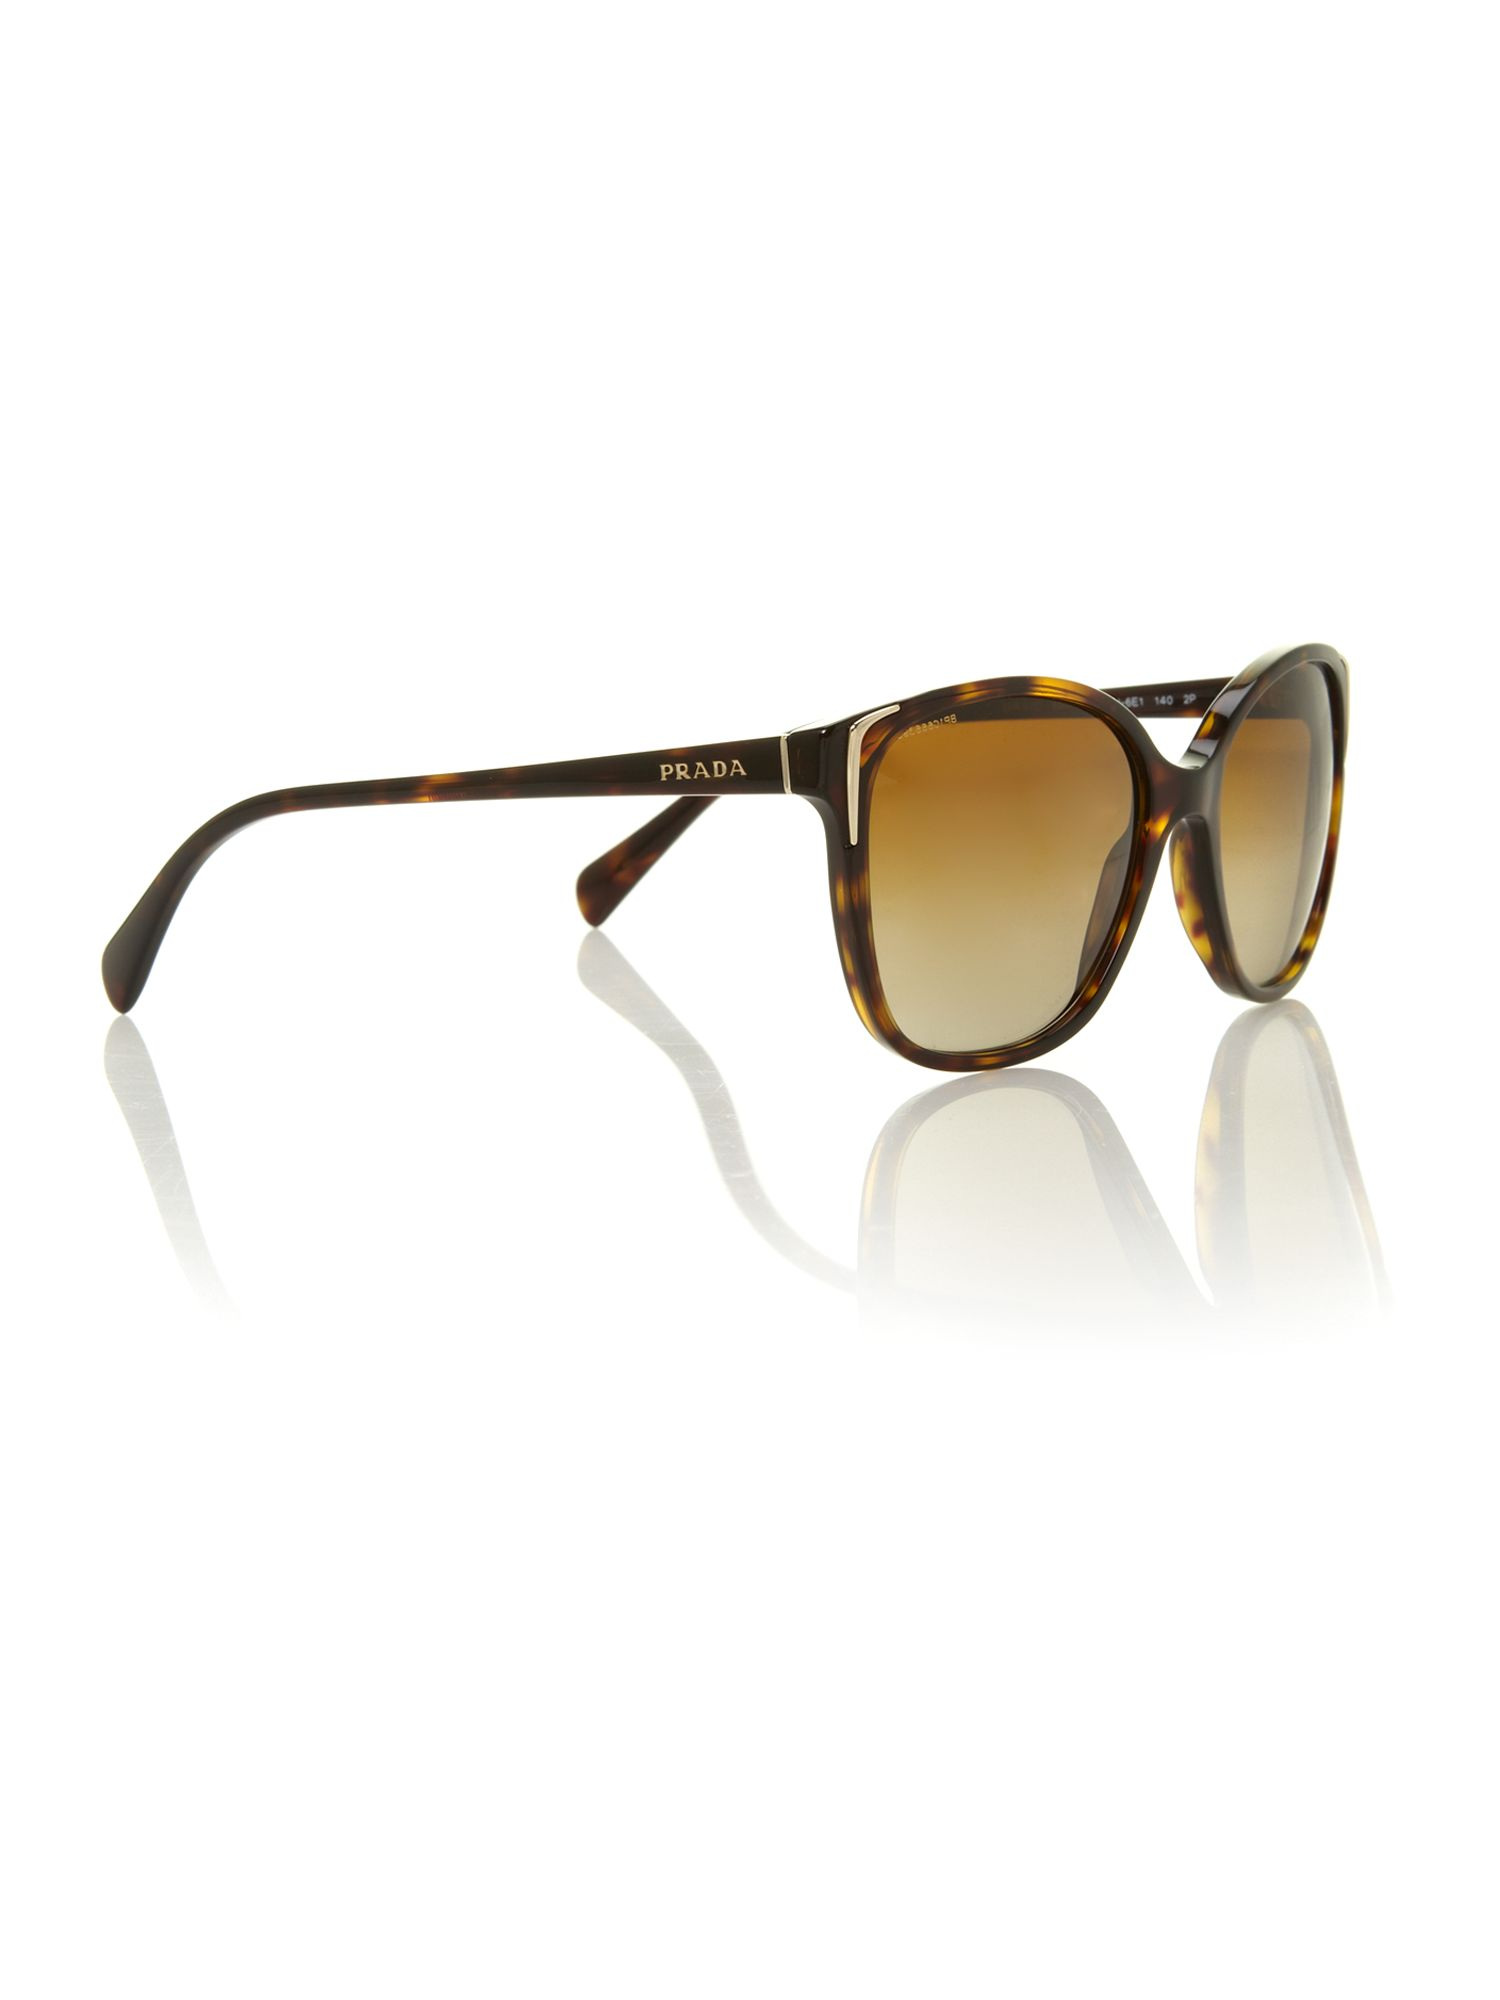 Ladies PR010S havana square sunglasses